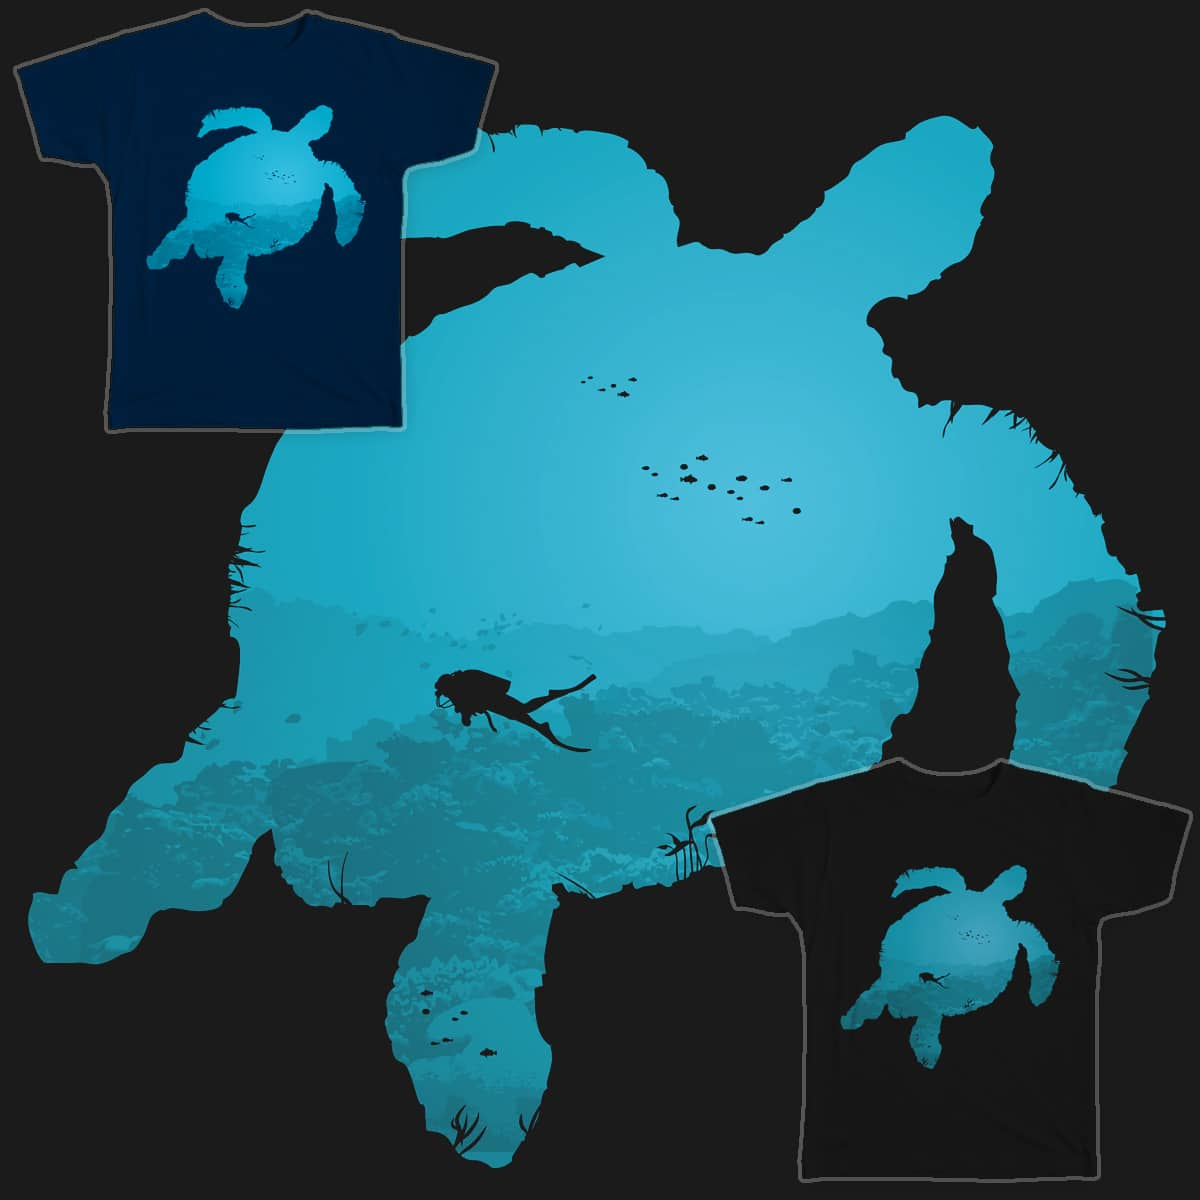 In Search For The Giant Sea Turtle by Flower Bean on Threadless